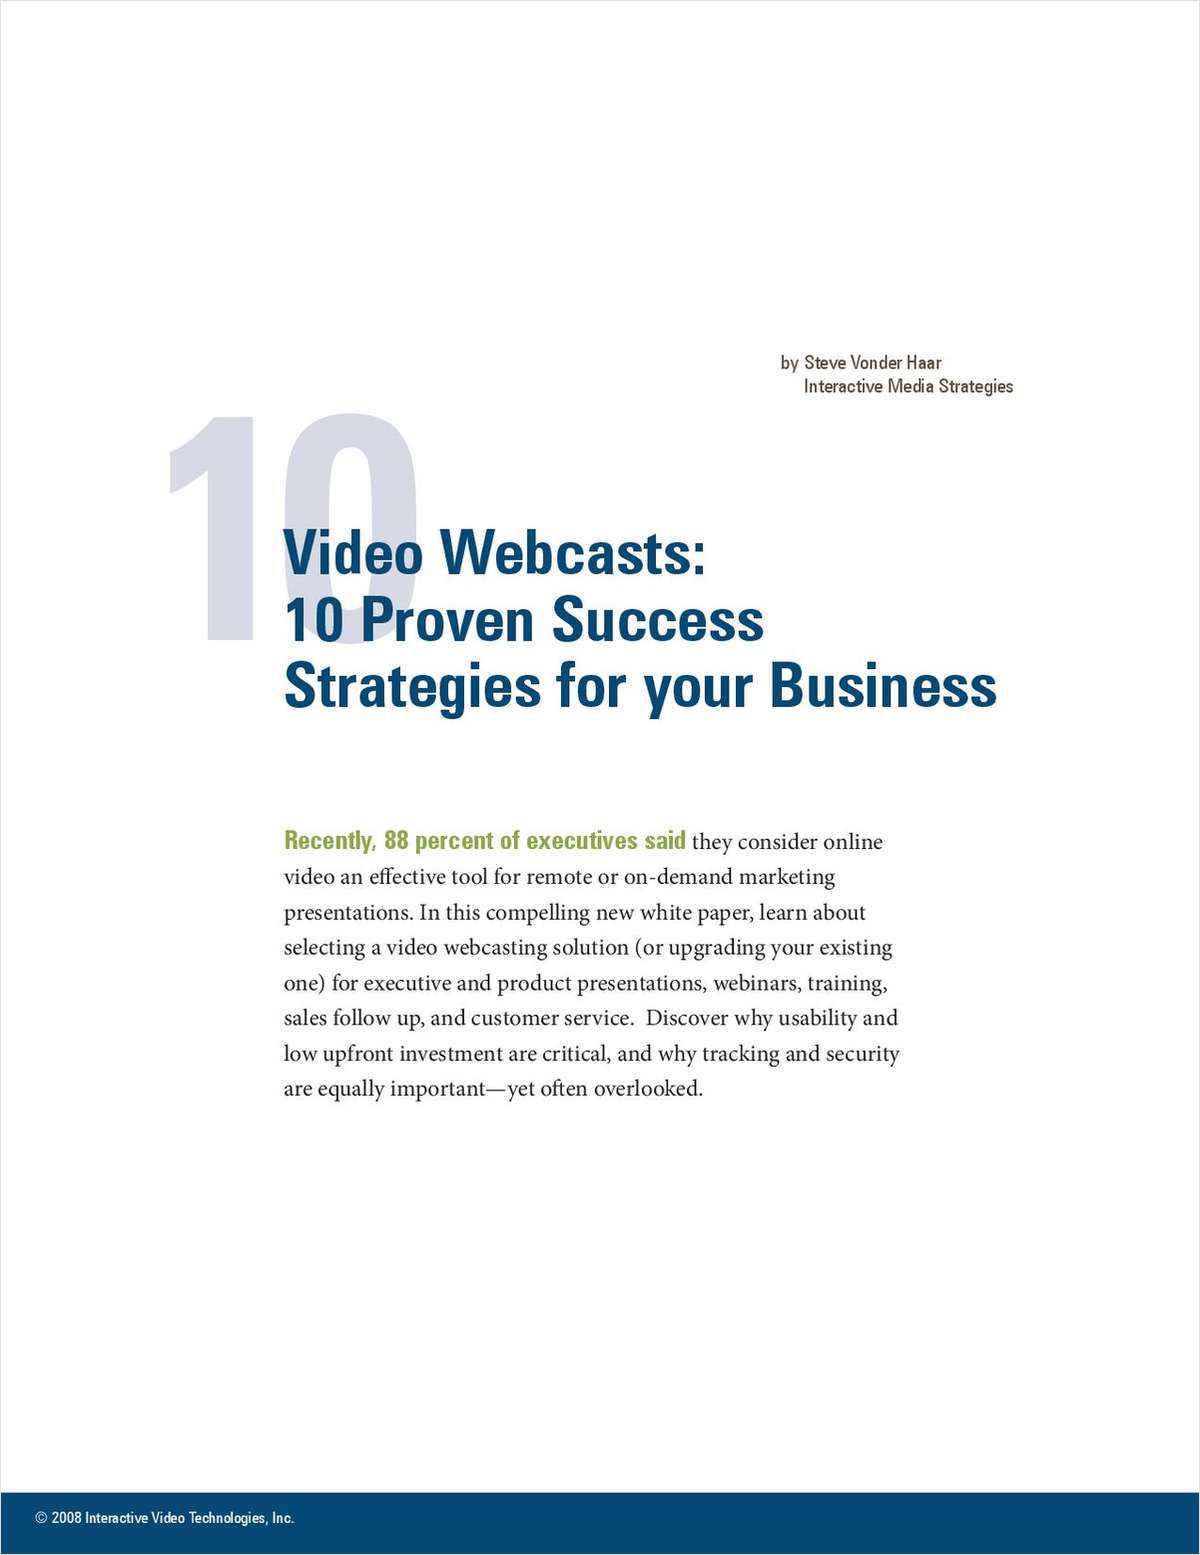 Video Webcasts: 10 Proven Success Strategies for your Business